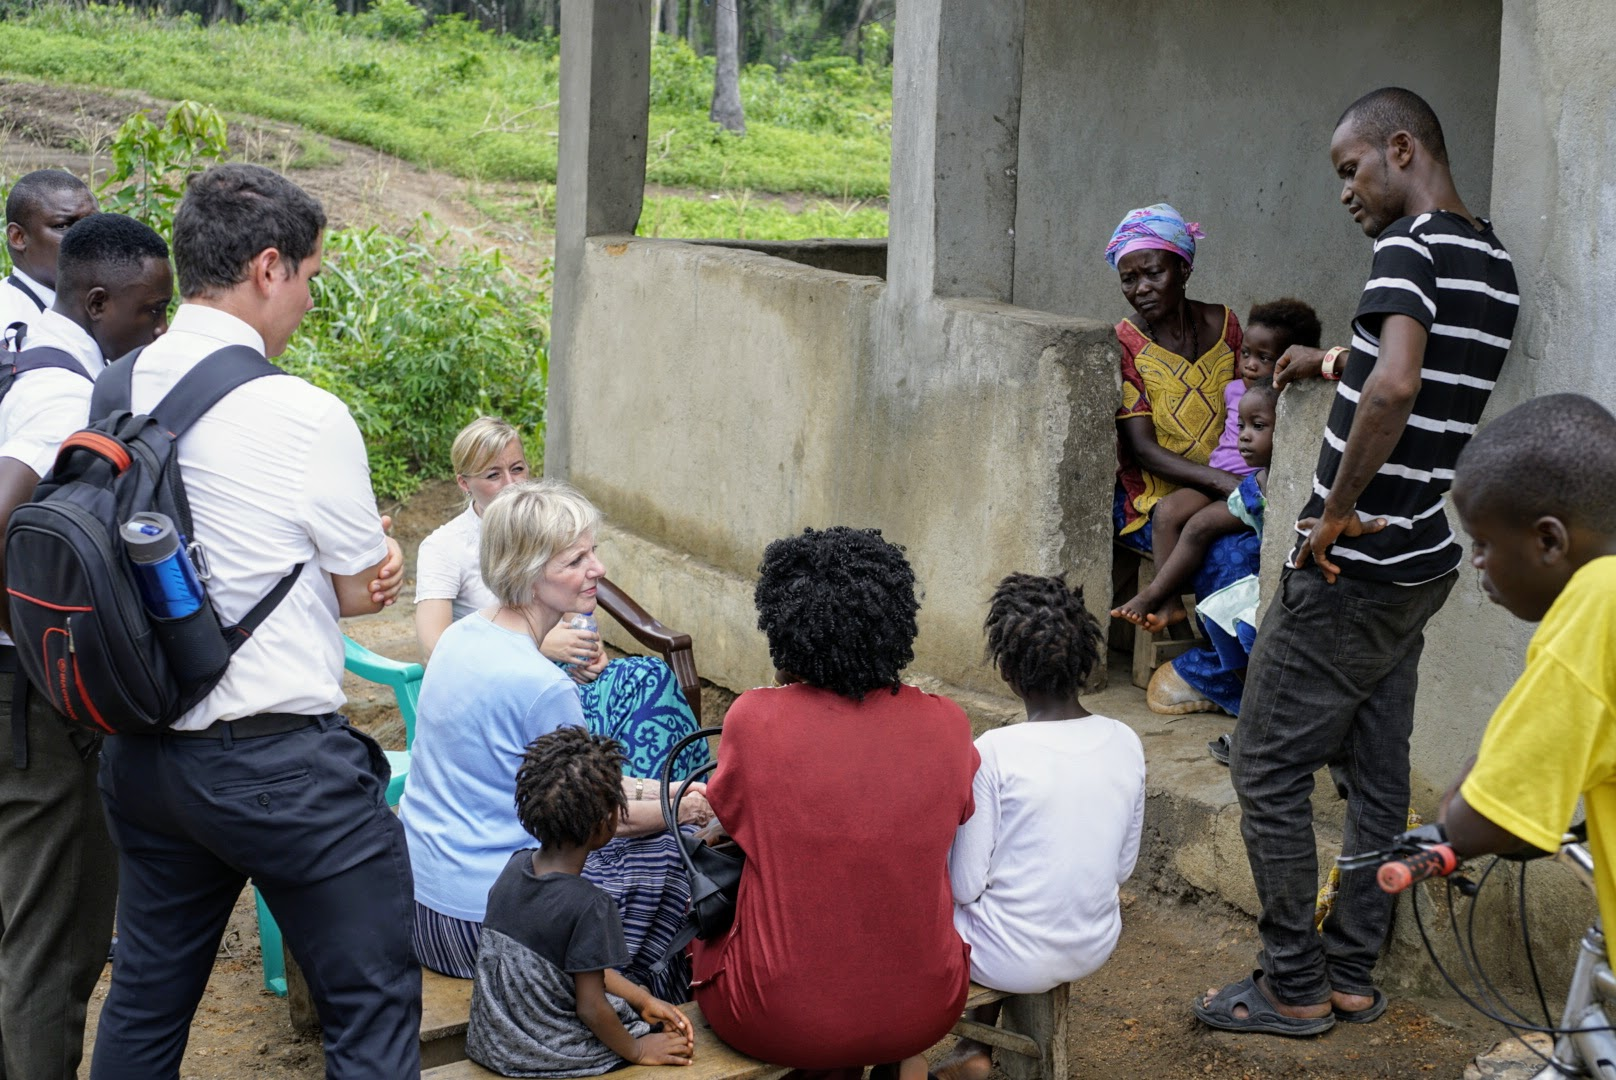 Sister Jean B. Bingham visits with members in Sierra Leone while visiting the country to observe the implementation of the Gospel Literacy program. Sister Bingham, Relief Society general president, visited the West African country June 5 through June 16, 2019.